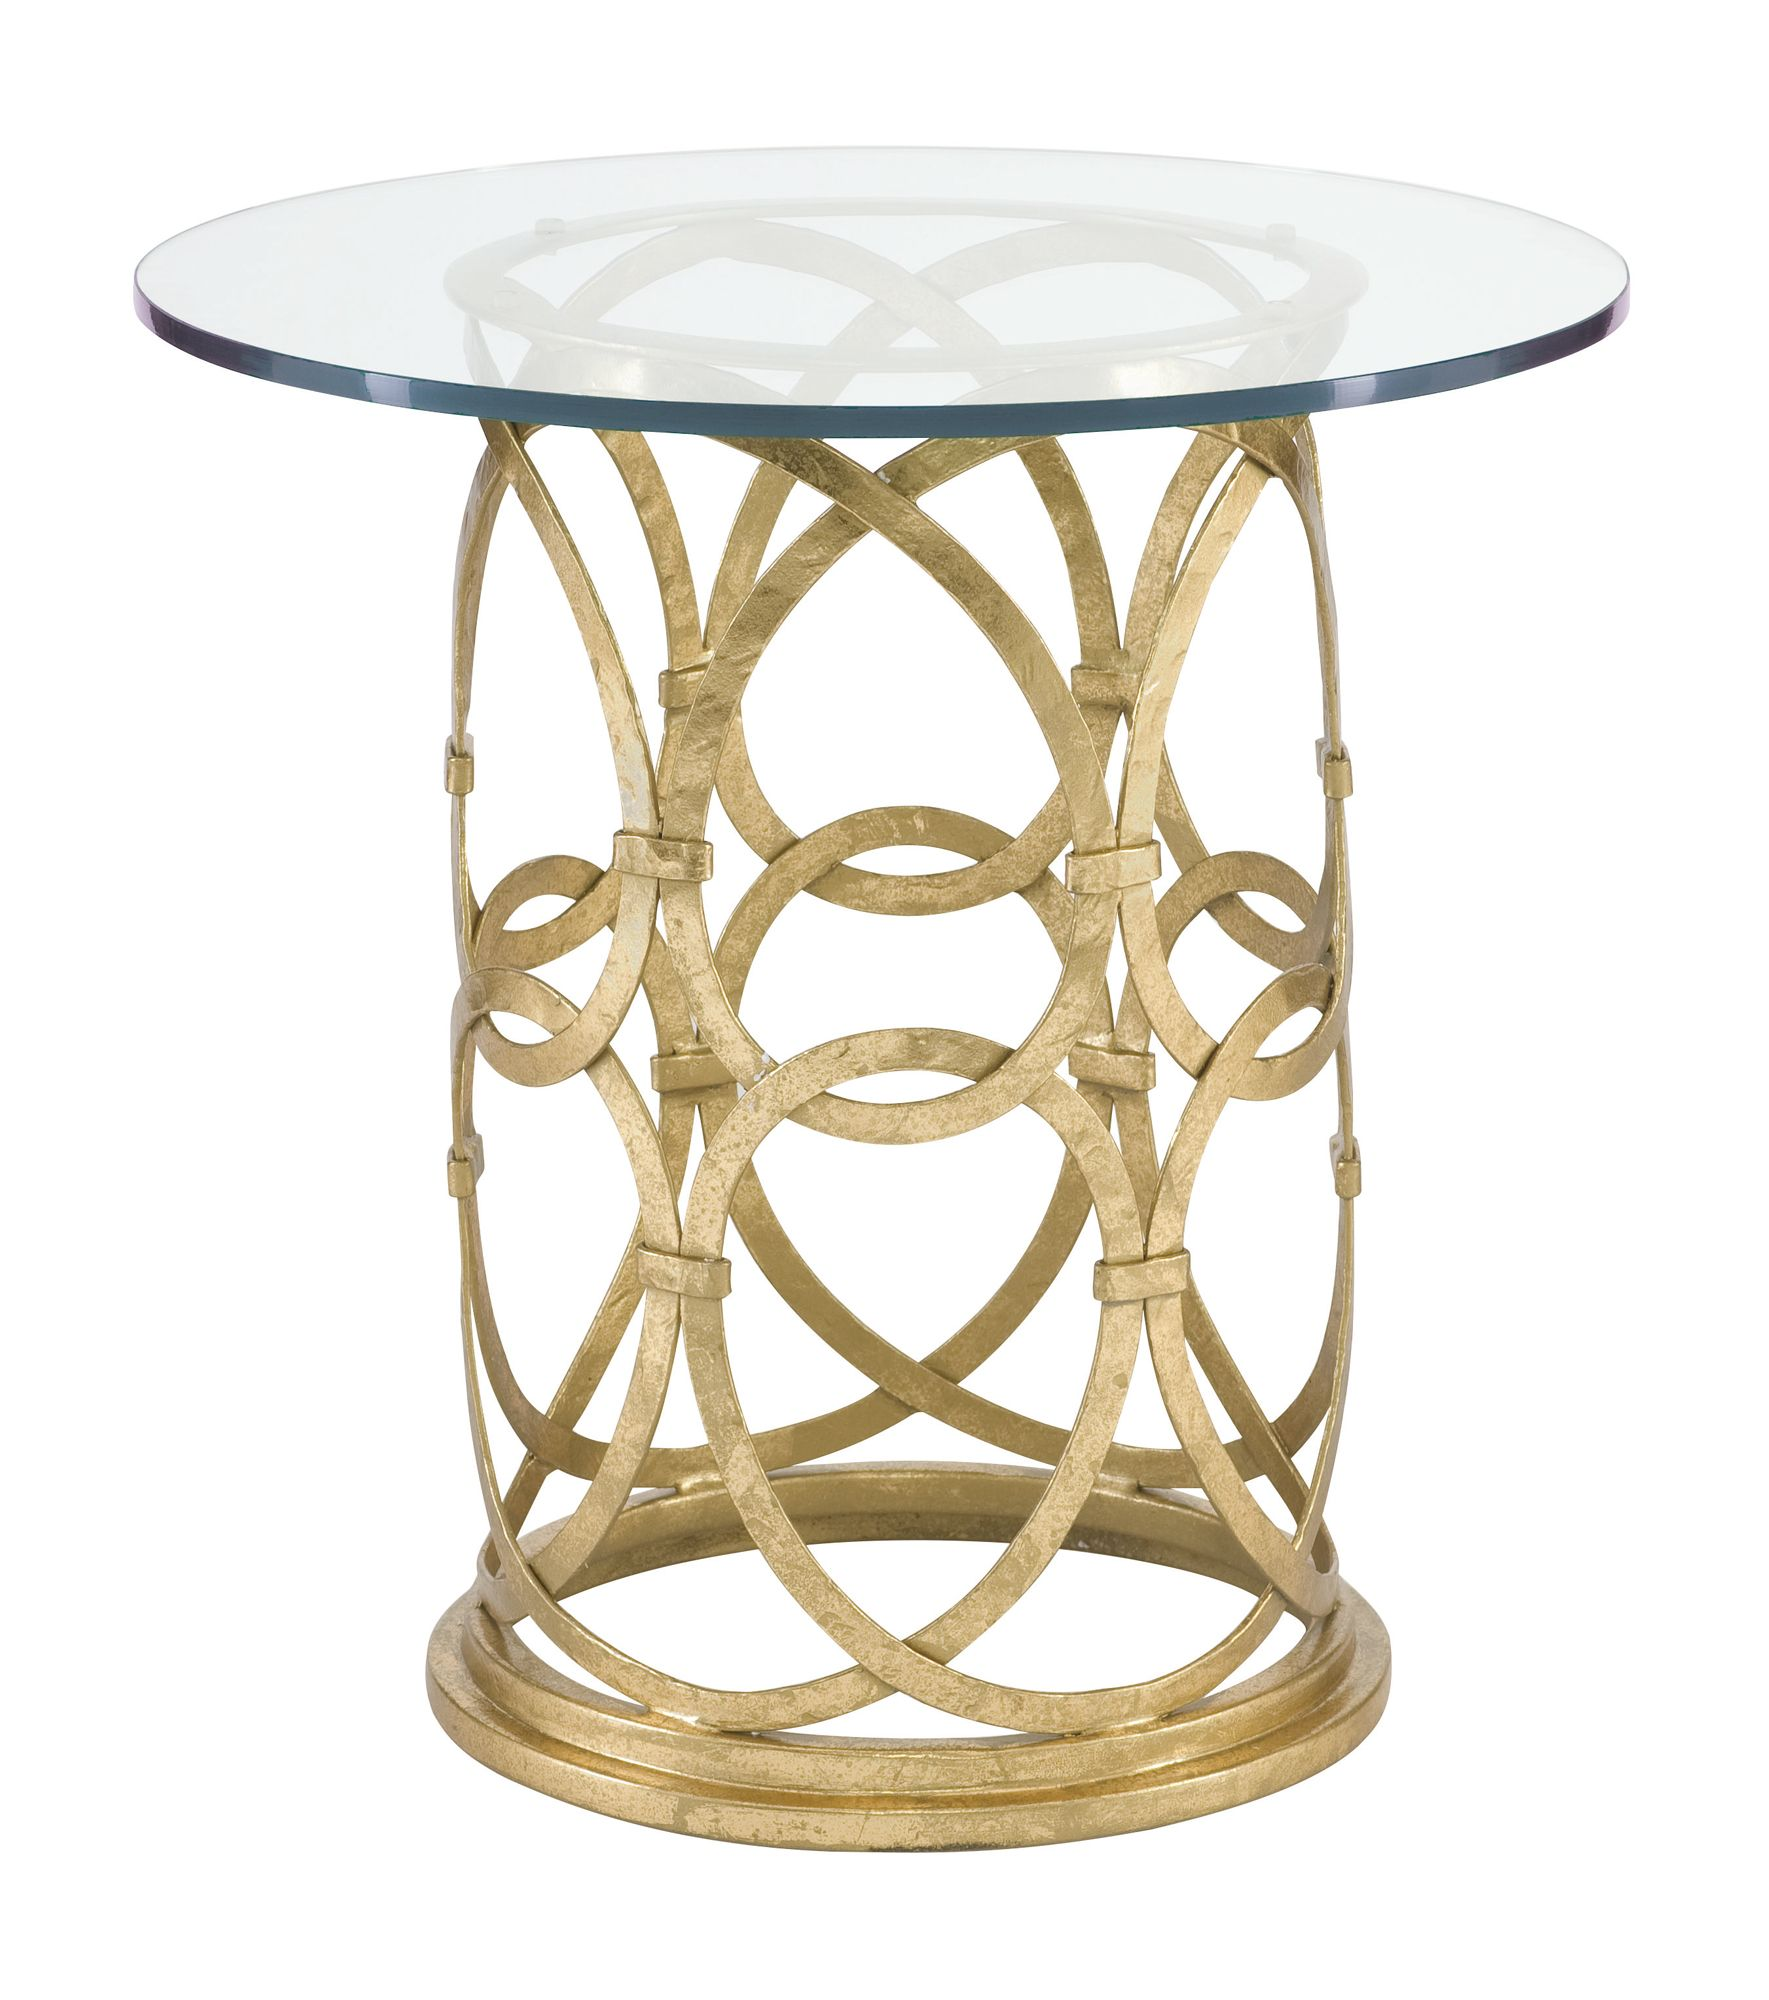 geneva round side table bernhardt dia accent glass top gold base wicker set white end with storage modern lamp chairs metal outdoor target wool rugs inch tablecloth bayside